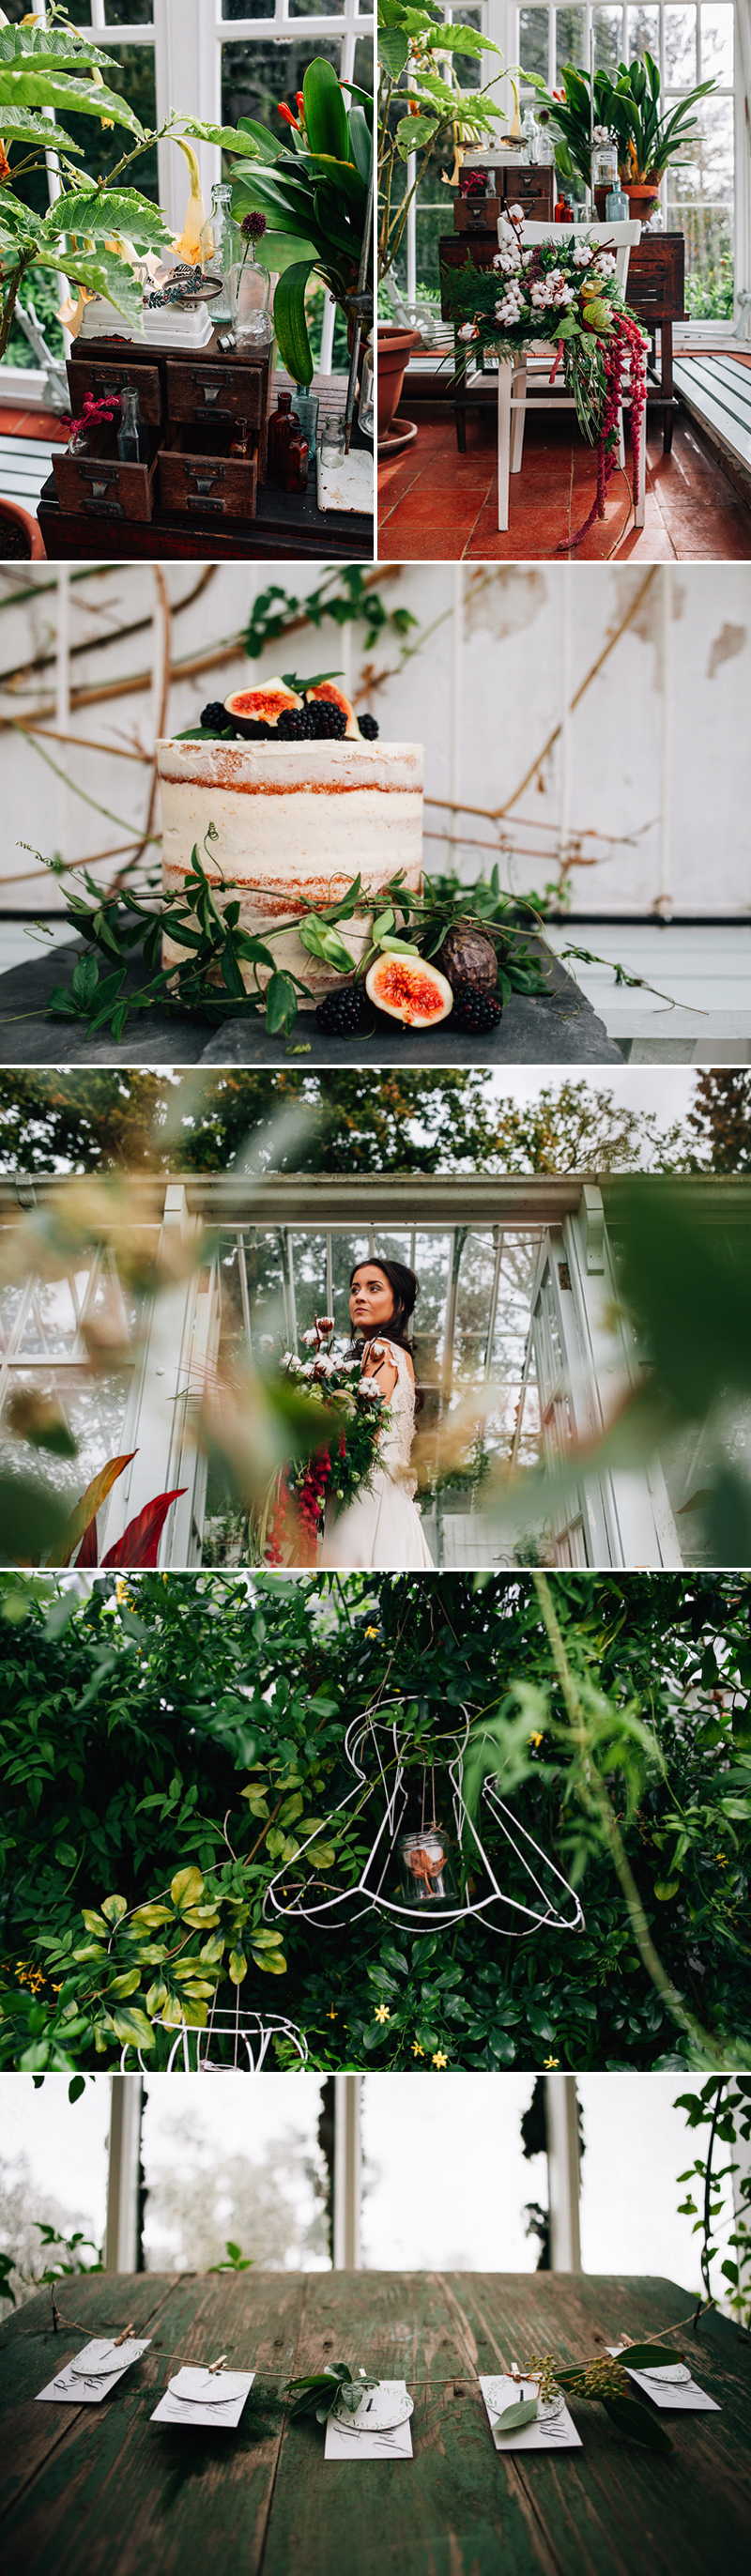 wedding-styling-prop-hire-little-lending-company-amy-lewin-photography-001